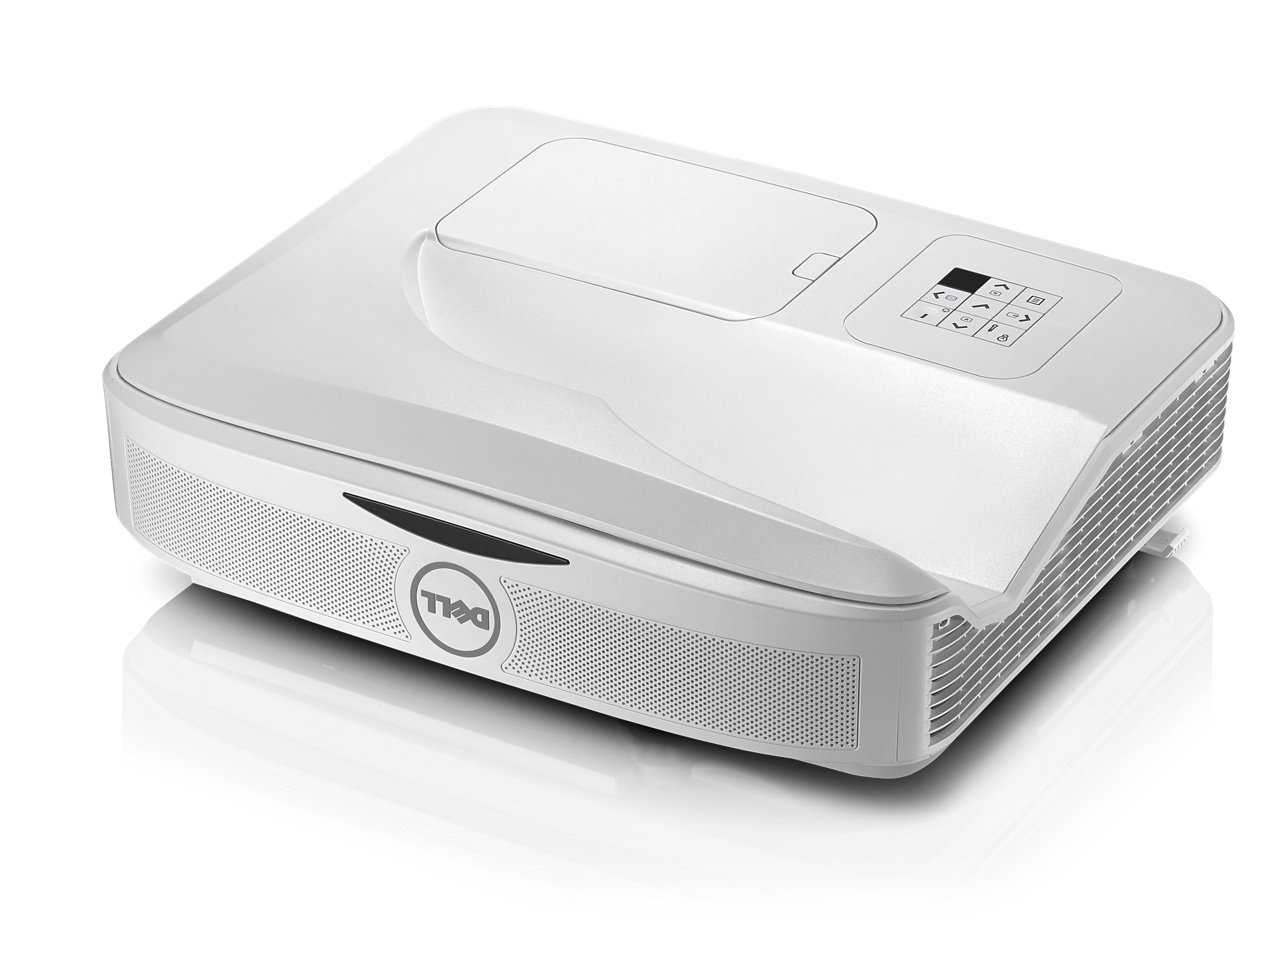 Dell S560P - DLP projector - 3400 ANSI lumens - Full HD (1920 x 1080) - 16:9 - 1080p - with 2 years